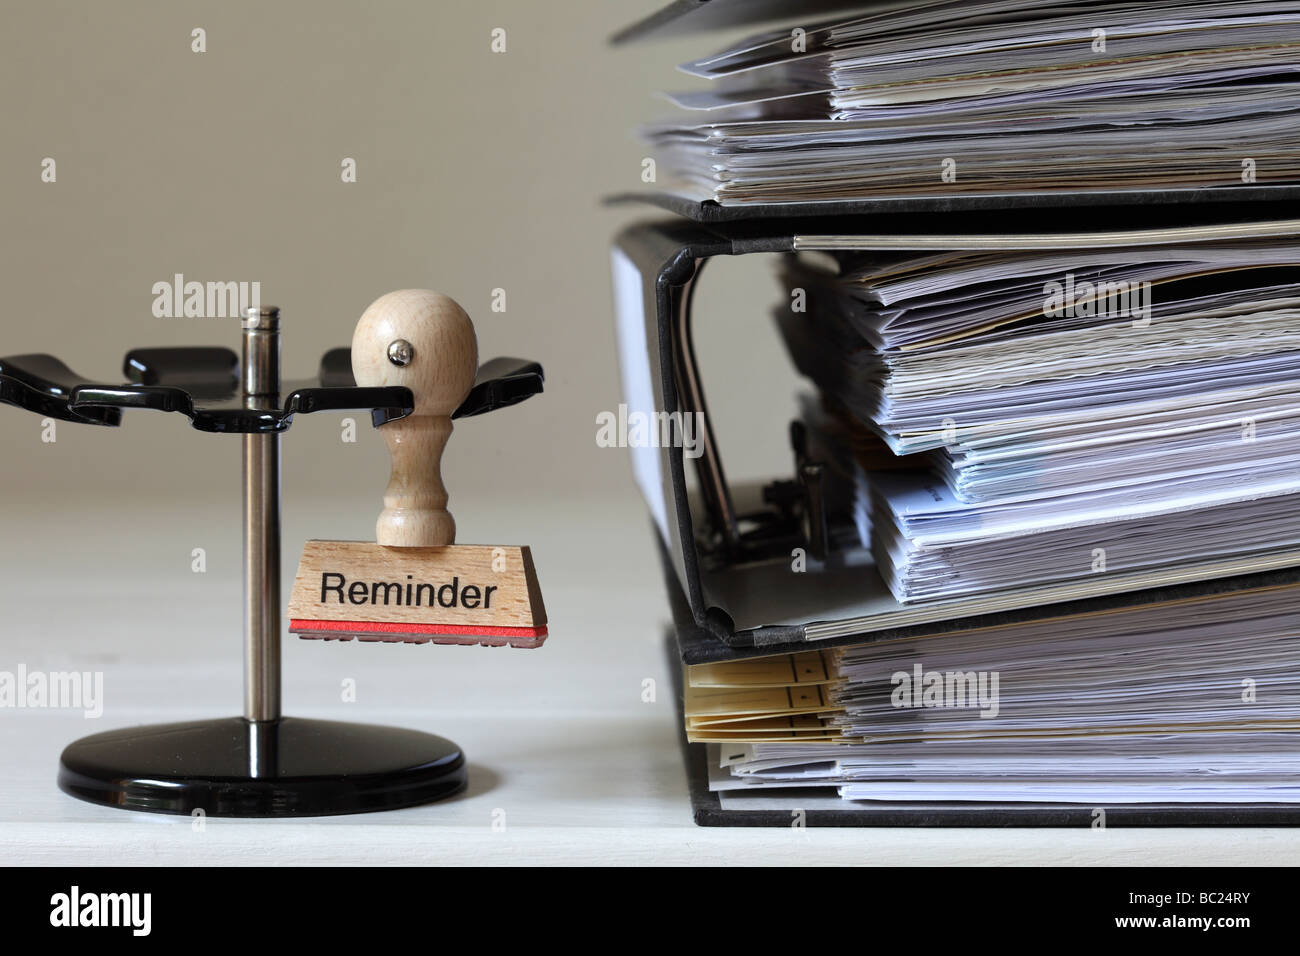 Stamp with inscription Reminder next to a pile of files - Stock Image